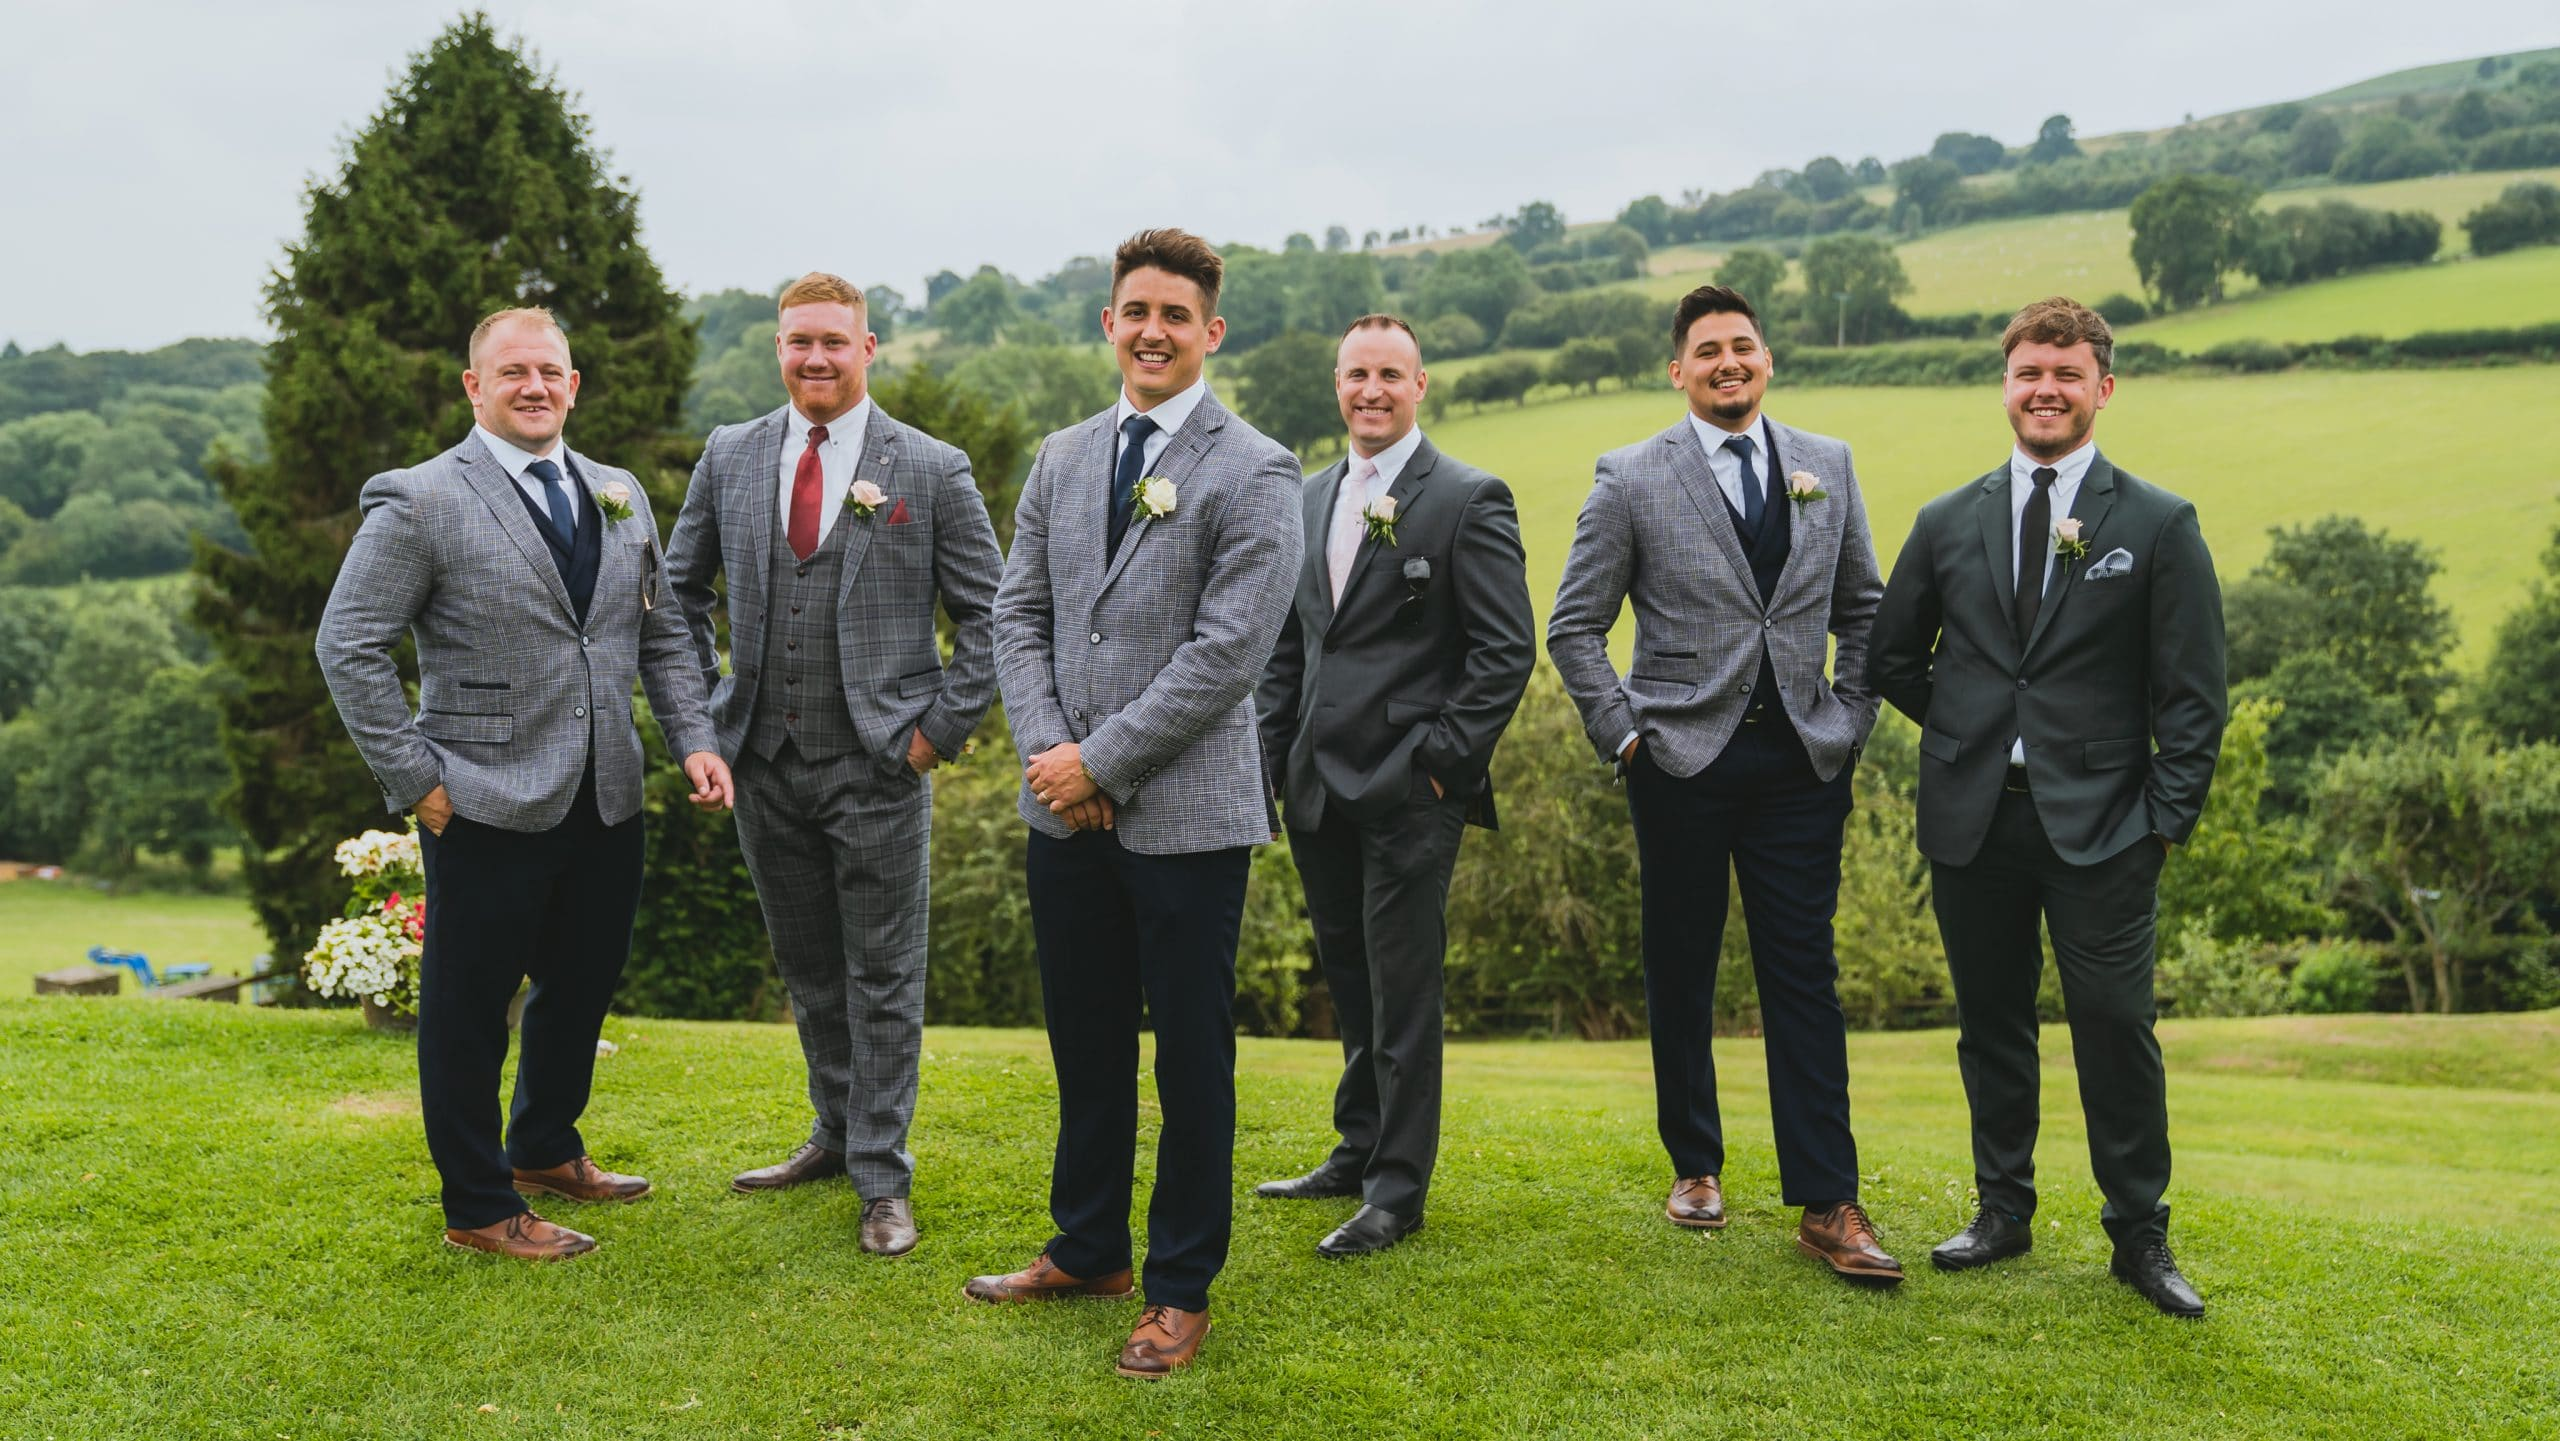 Formal group photos at Sugarloaf barn in Abergavenny